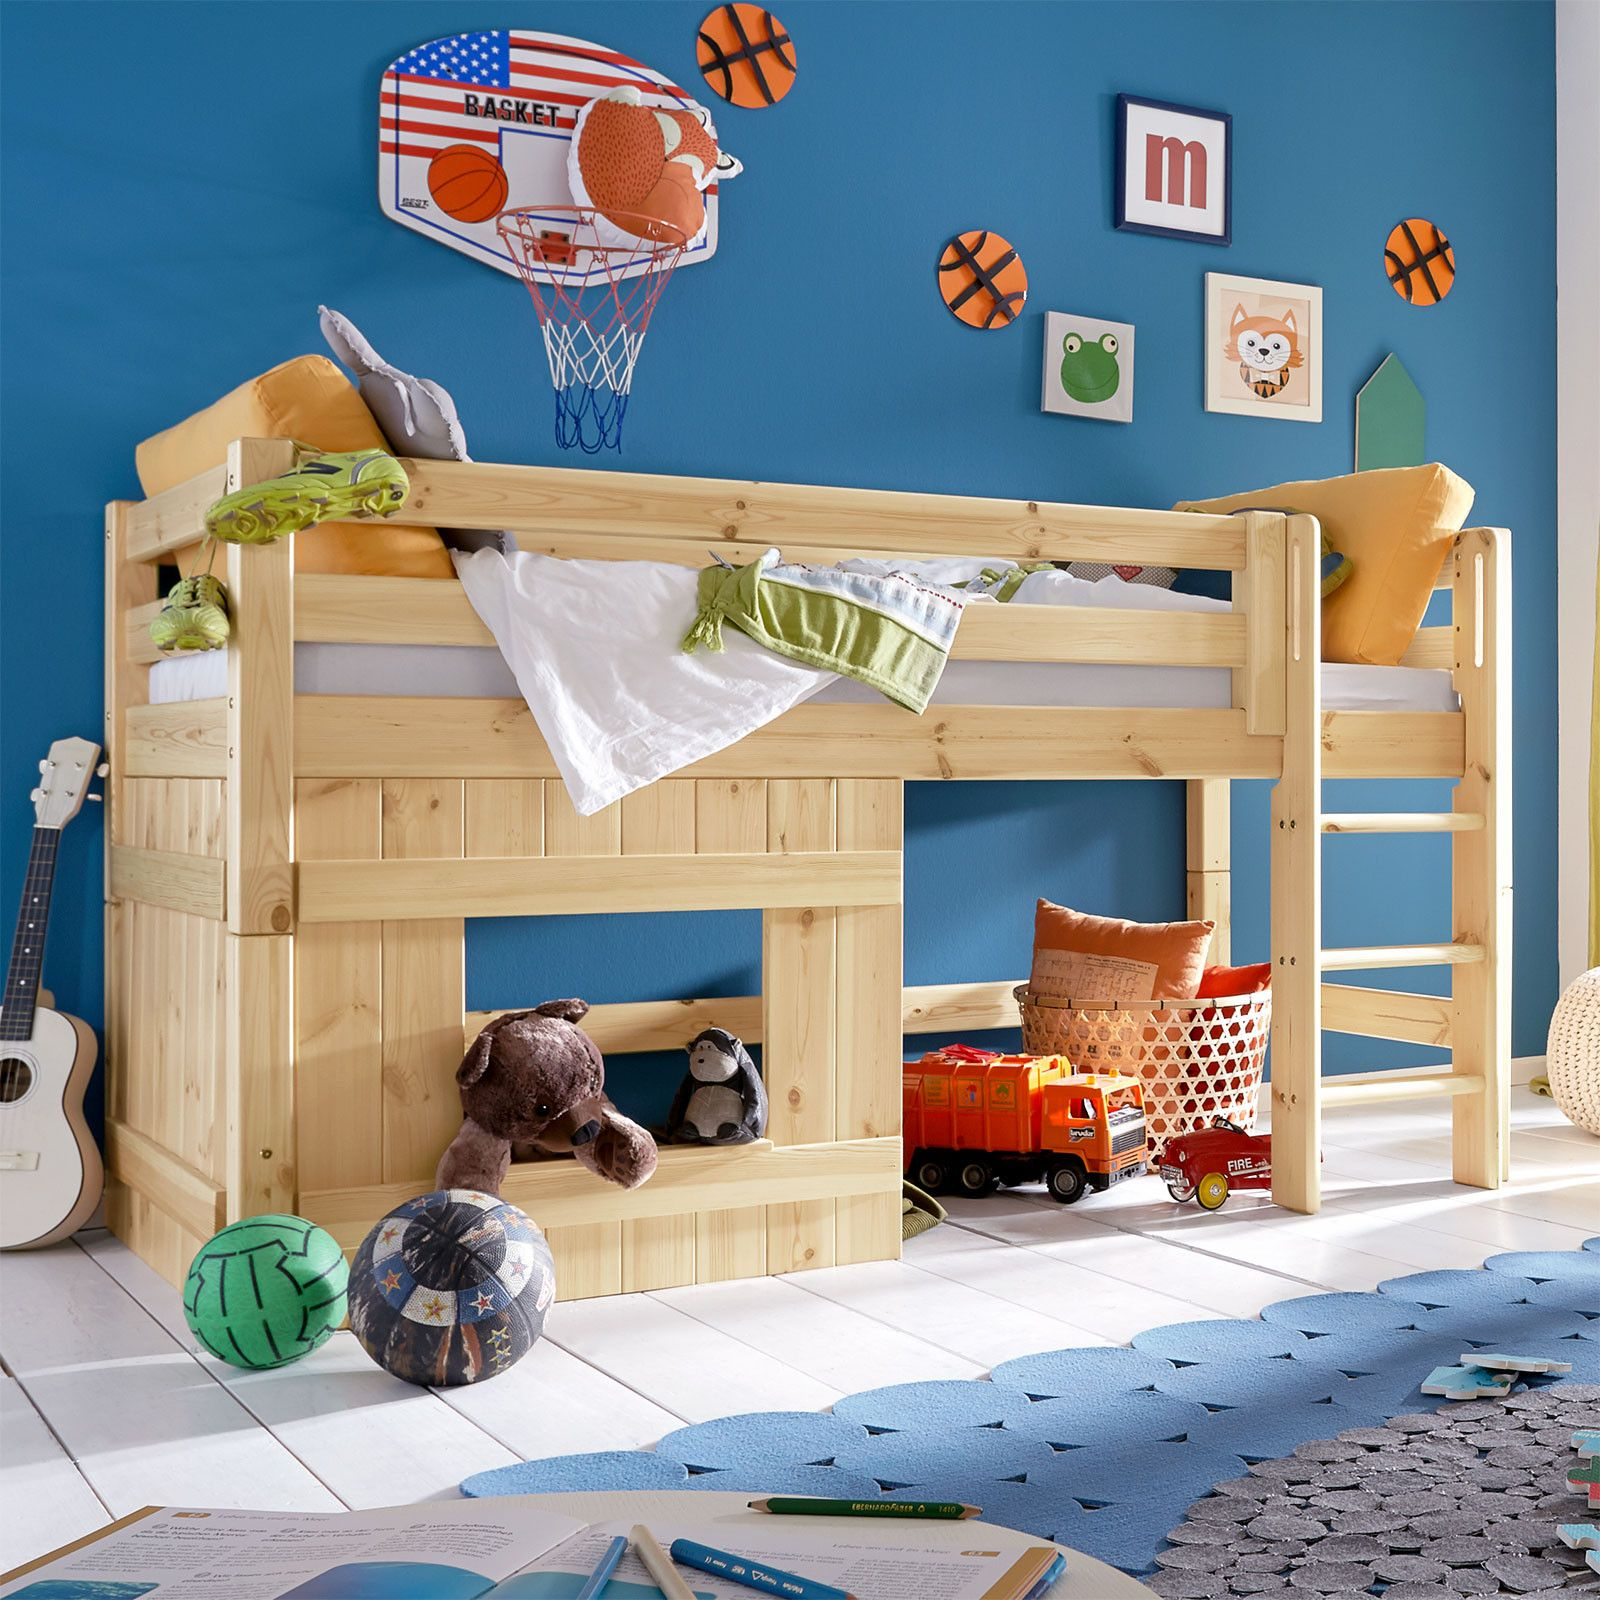 Genial Kinder Schlafzimmer Junge (With images) | Kid beds ...